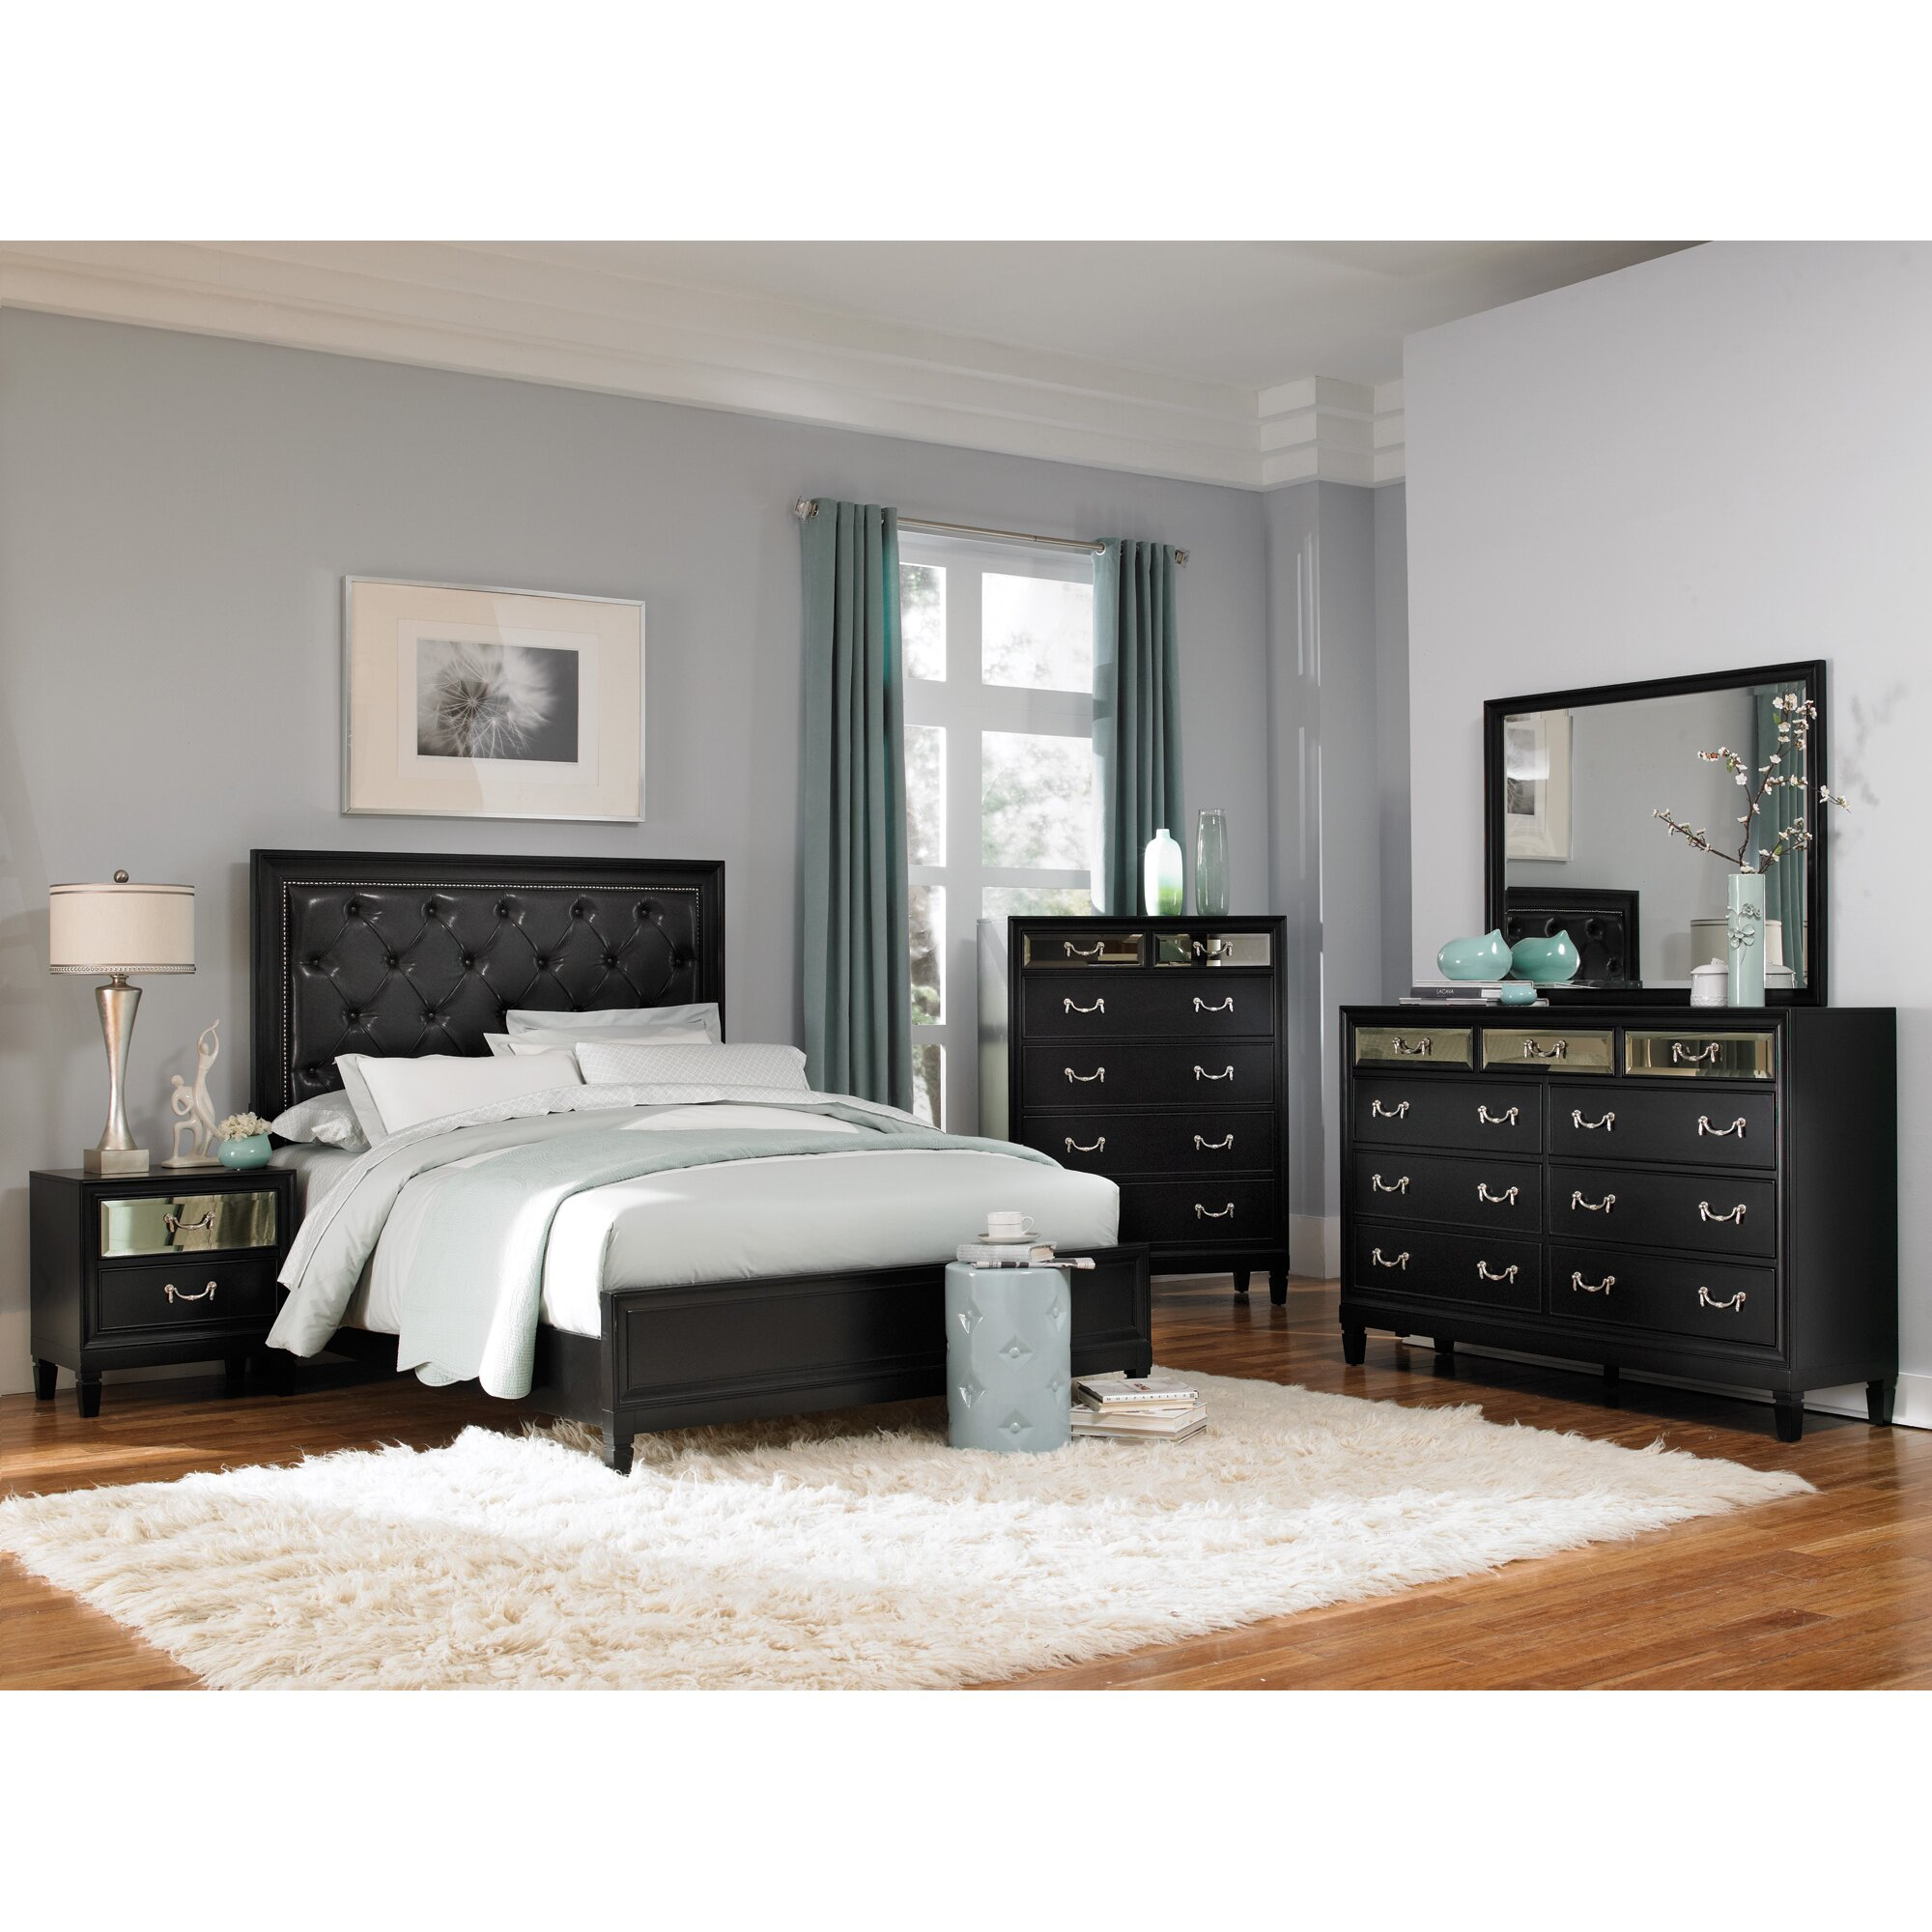 wildon home furniture - wildon home furniture monclerfactoryoutletscom